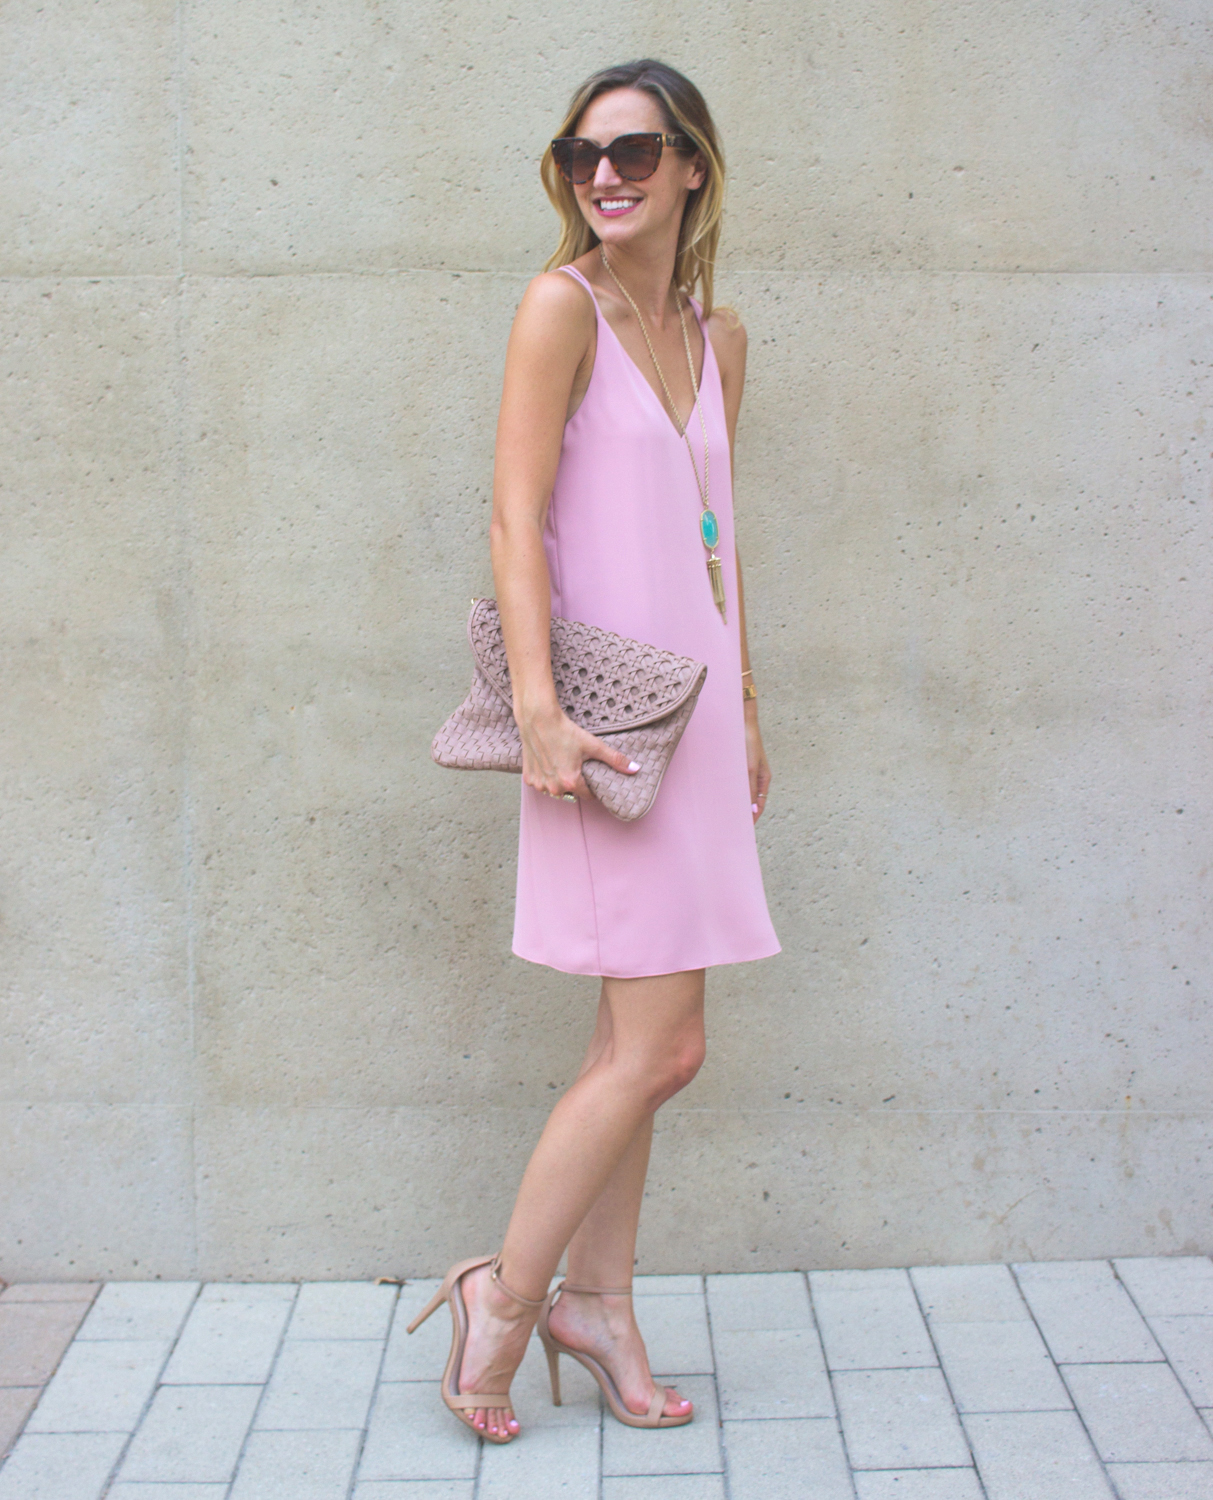 livvyland-blog-olivia-watson-date-night-summer-austin-texas-outfit-inspiration-topshop-blush-pink-slip-dress-nordstrom-mens-suit-fashion-blogger-5